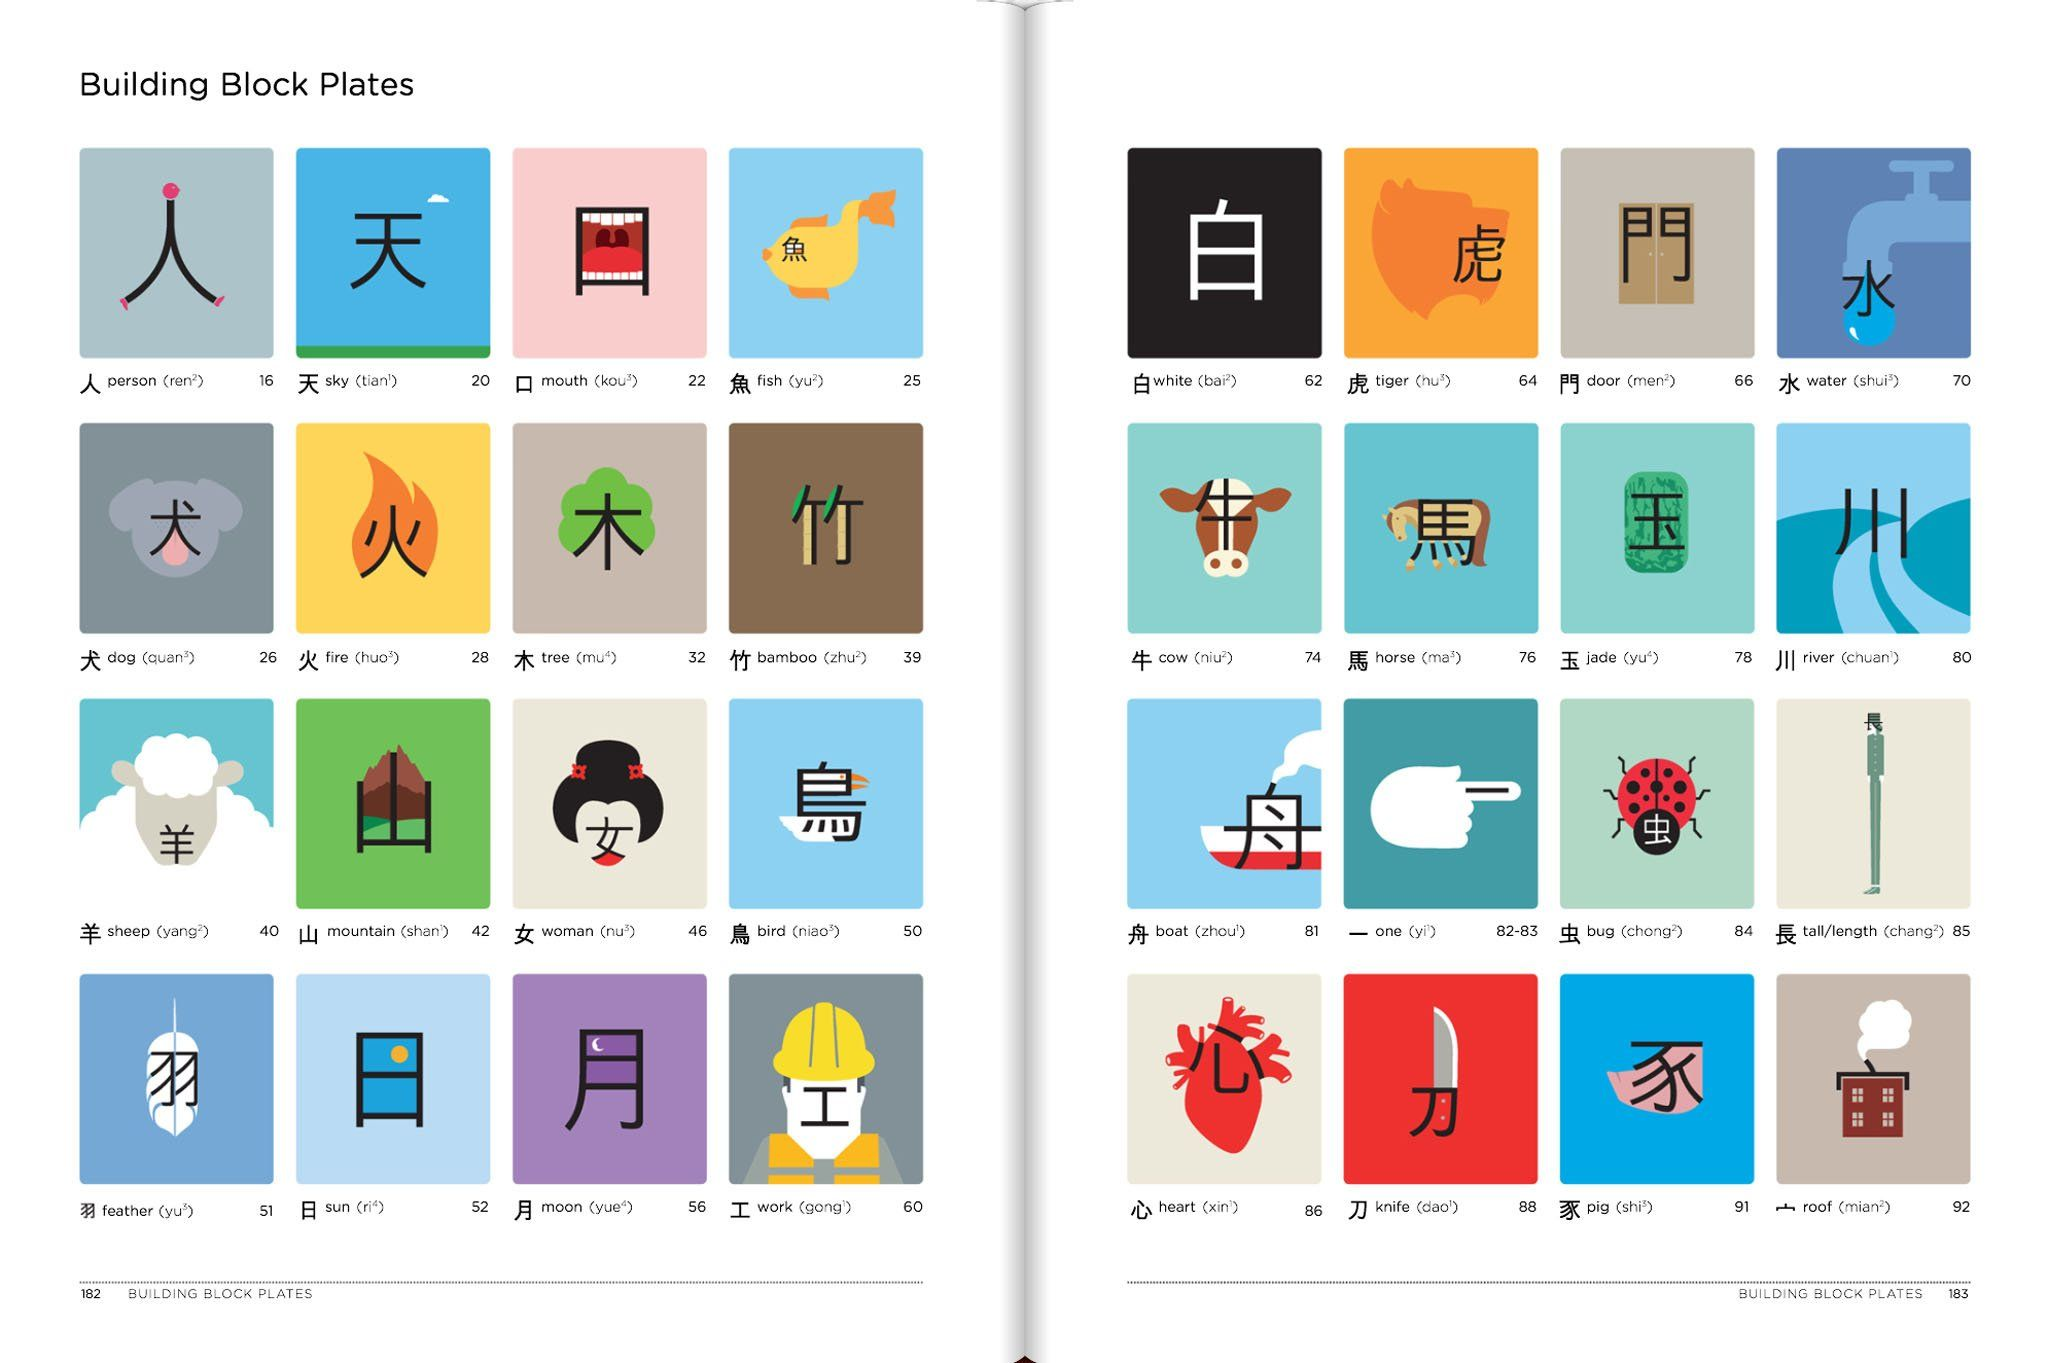 Chineasy The New Way To Read Chinese Shaolan Hsueh Noma Bar 9780062332097 Amazon Com Books Learn Chinese Chinese Lessons Mandarin Chinese Learning Easiest way to learn to read chinese